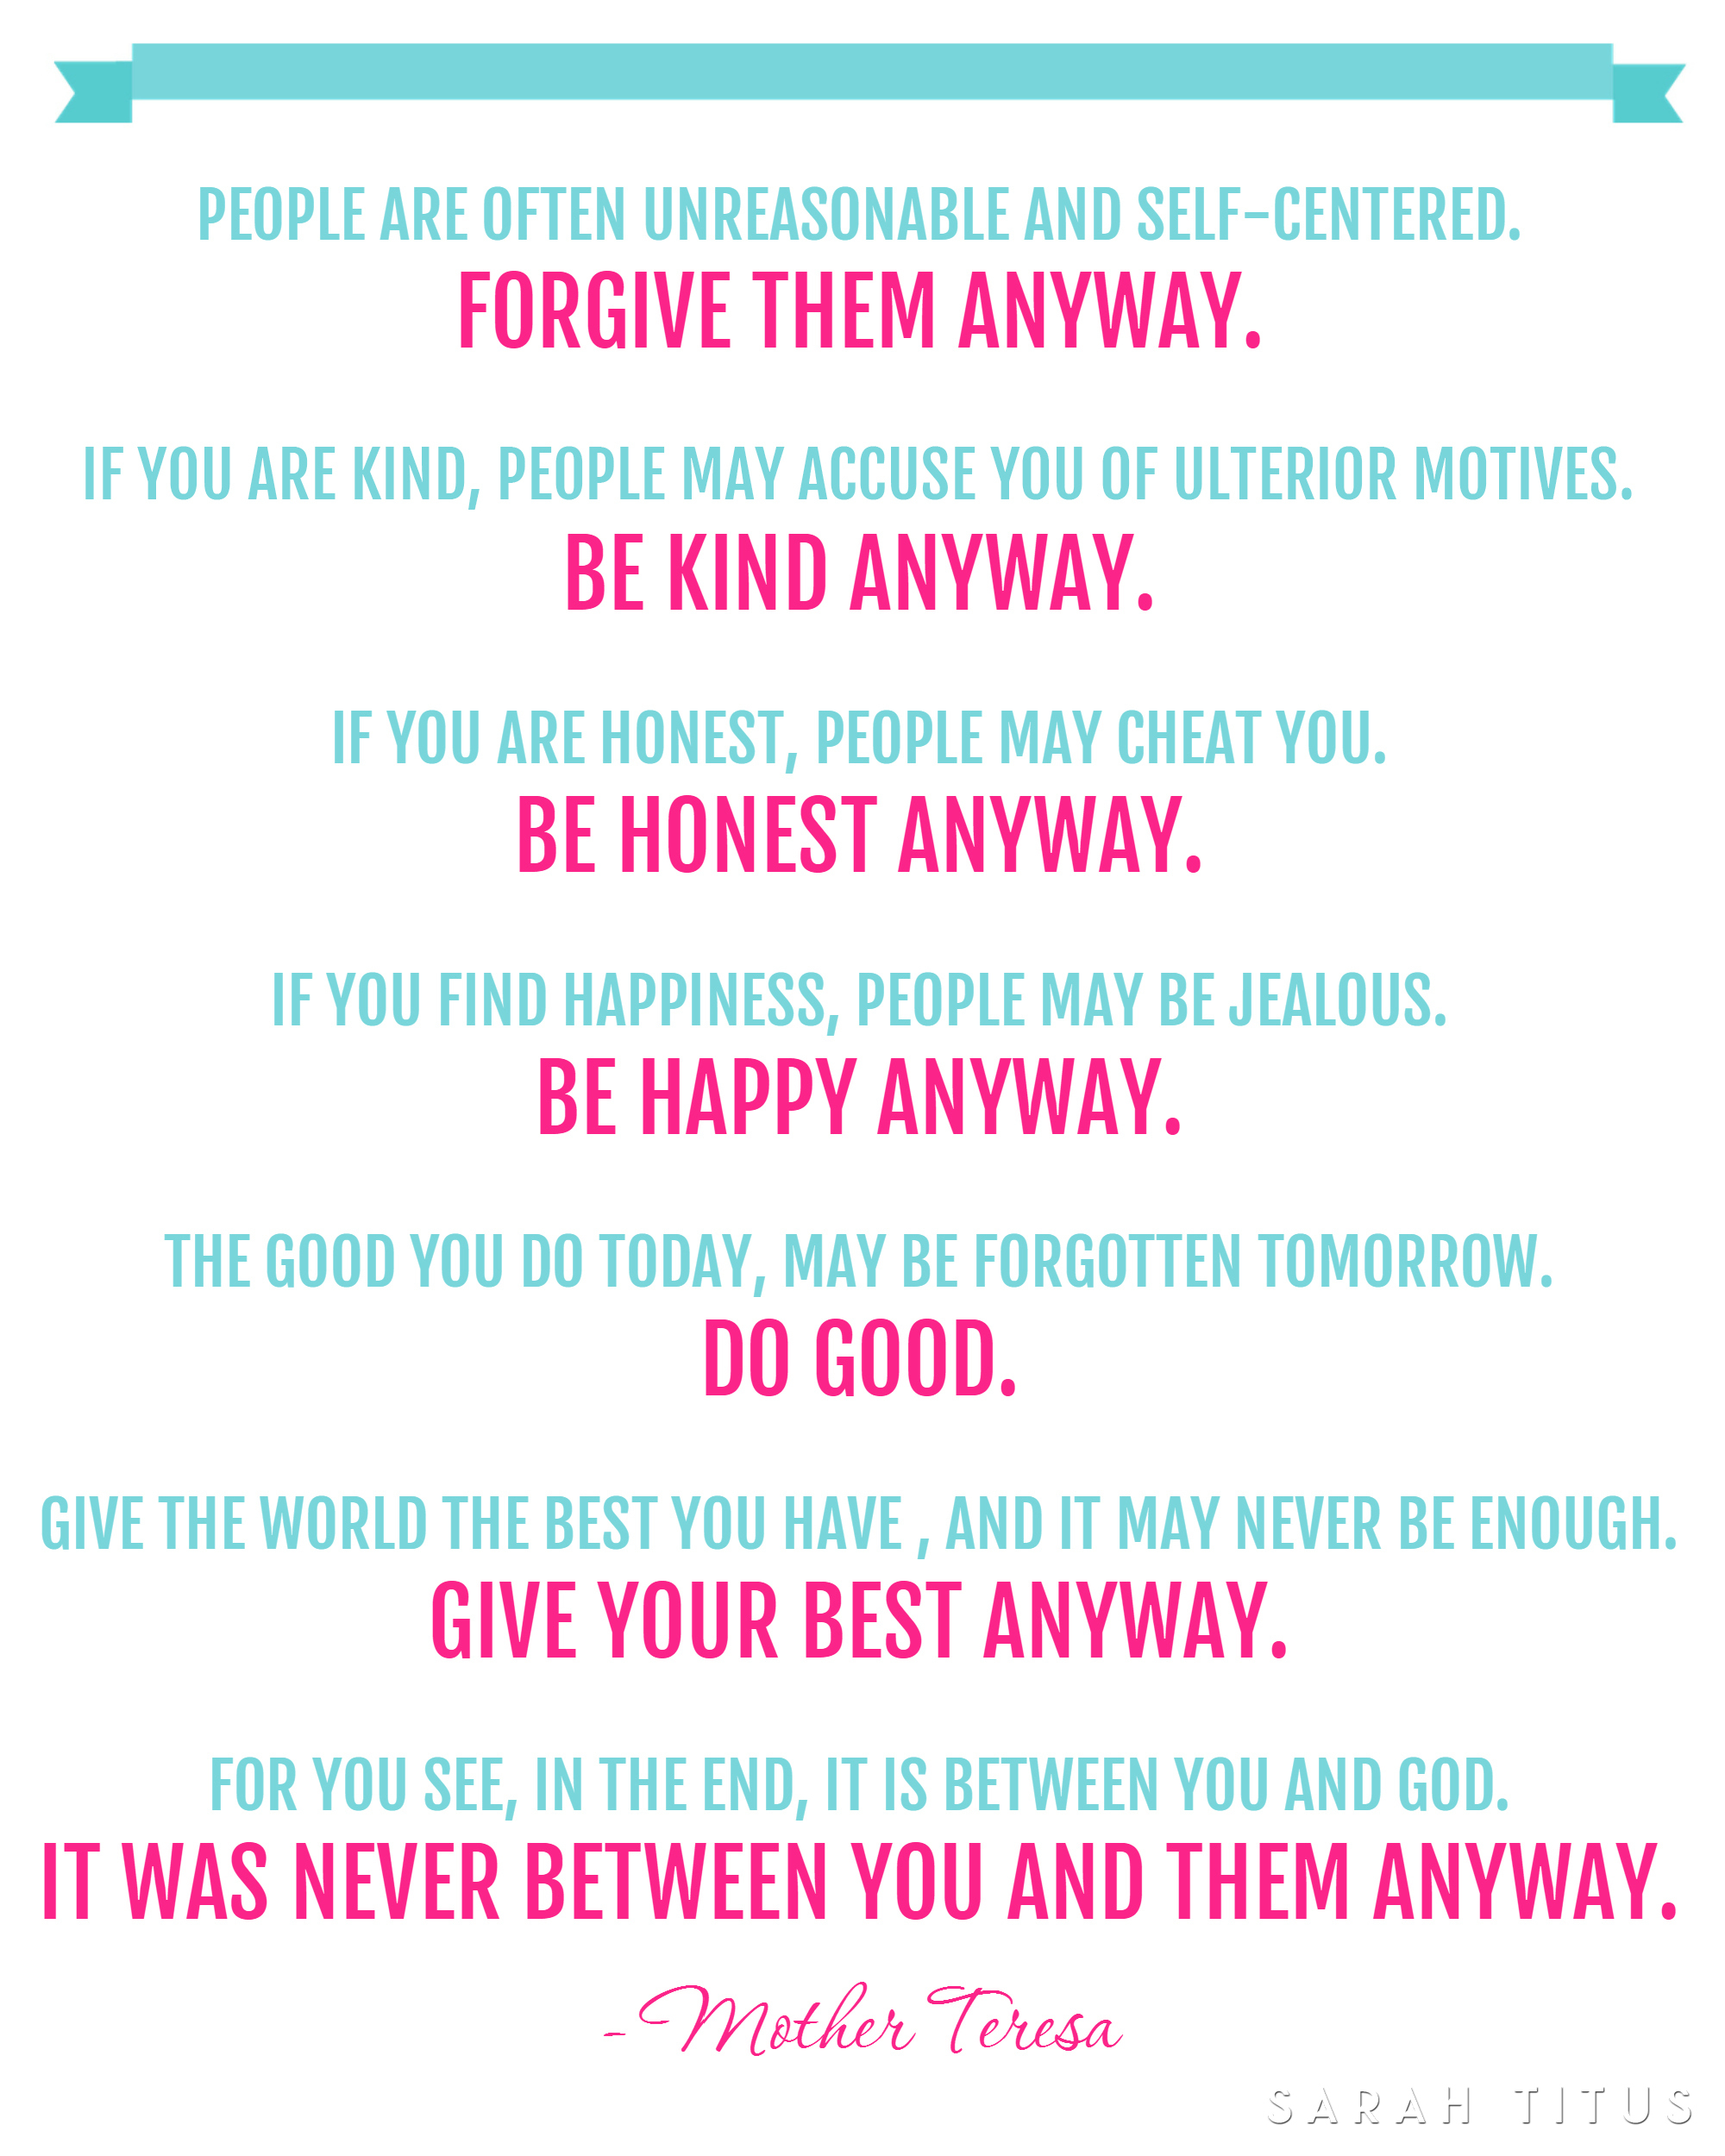 Free Mother Teresa Quote Printable - Sarah Titus - Free Wash Your Hands Signs Printable